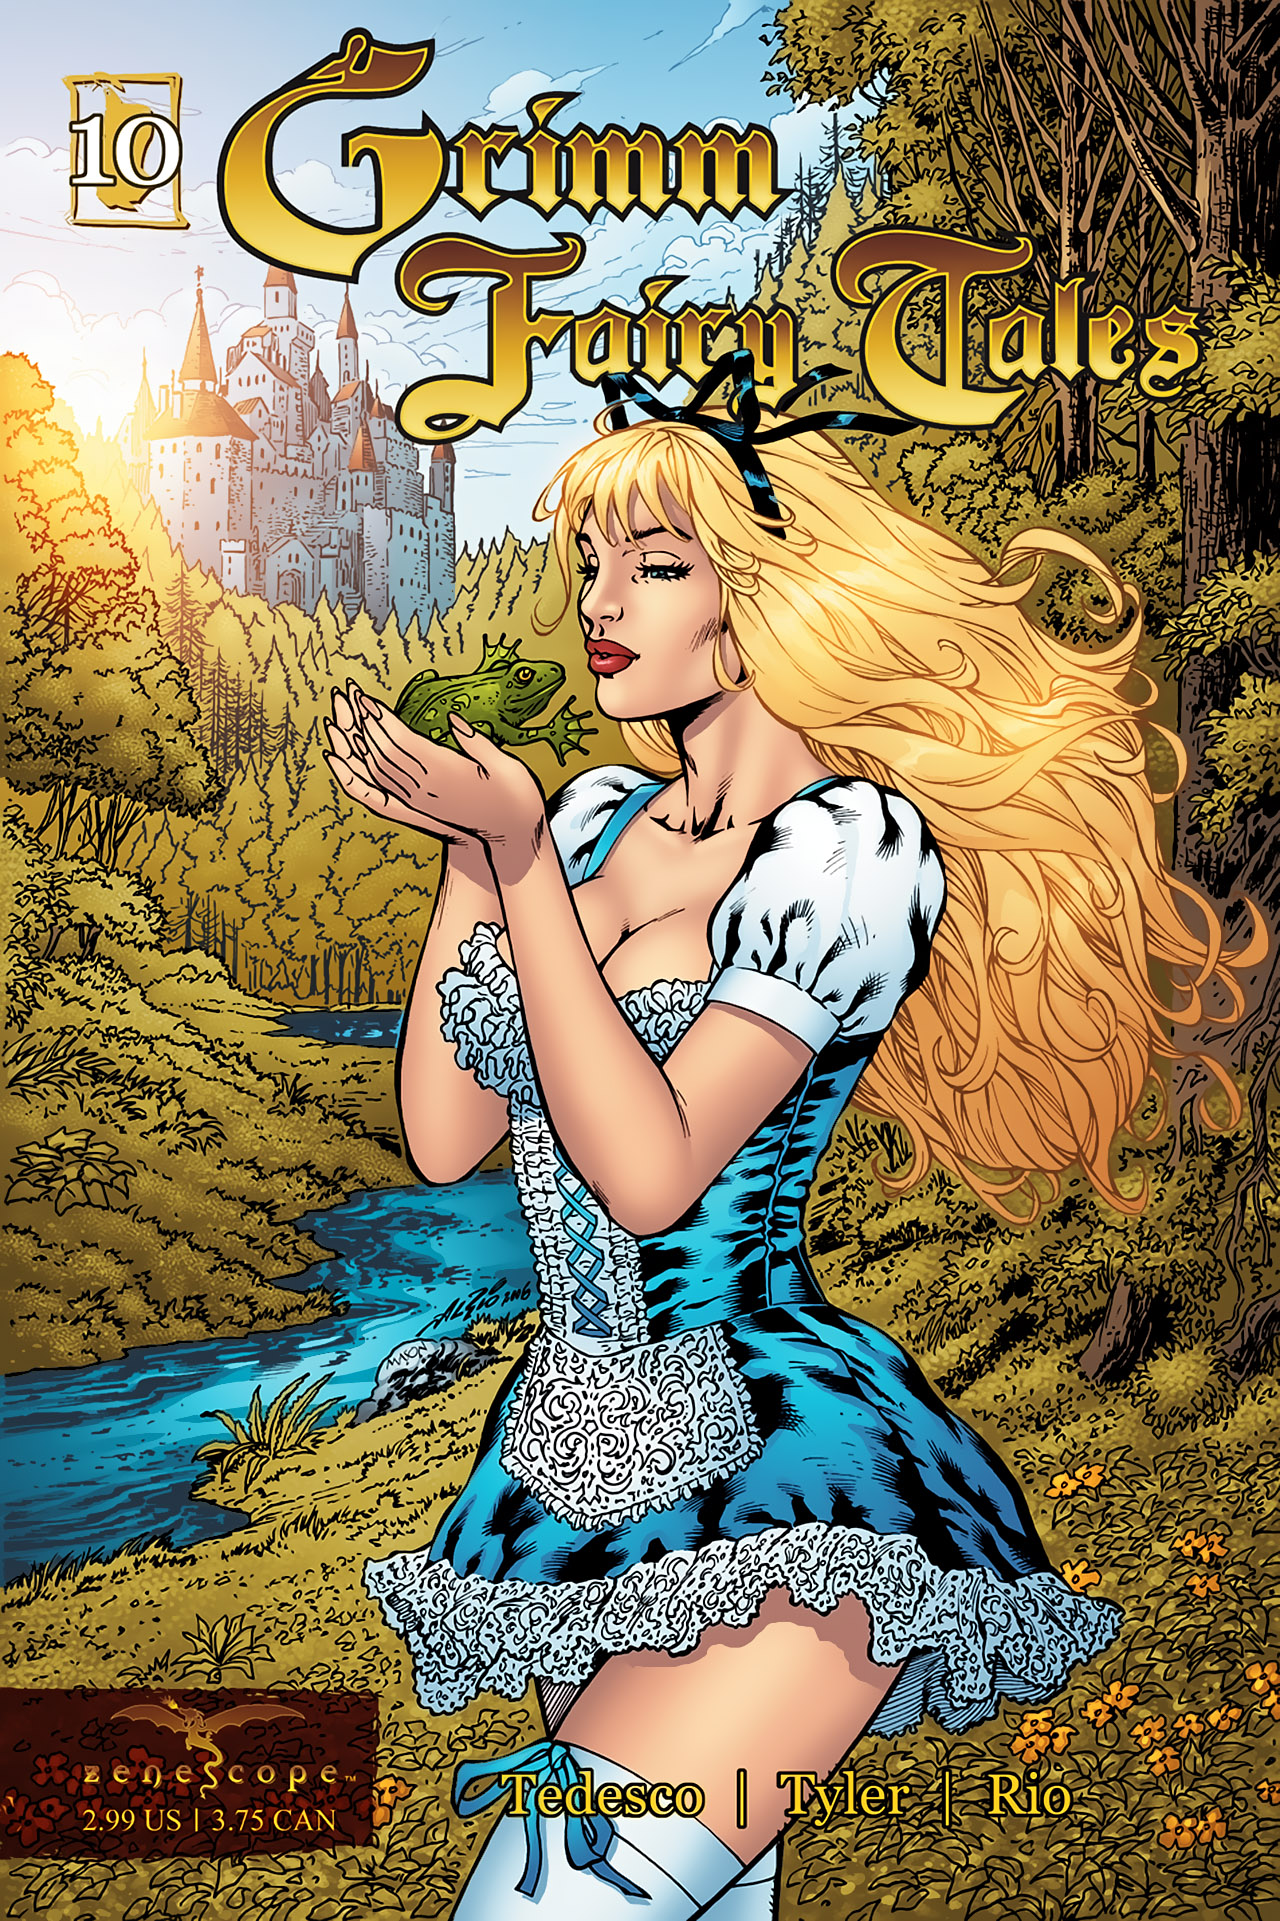 Grimm Fairy Tales (2005) Issue #10 #13 - English 1